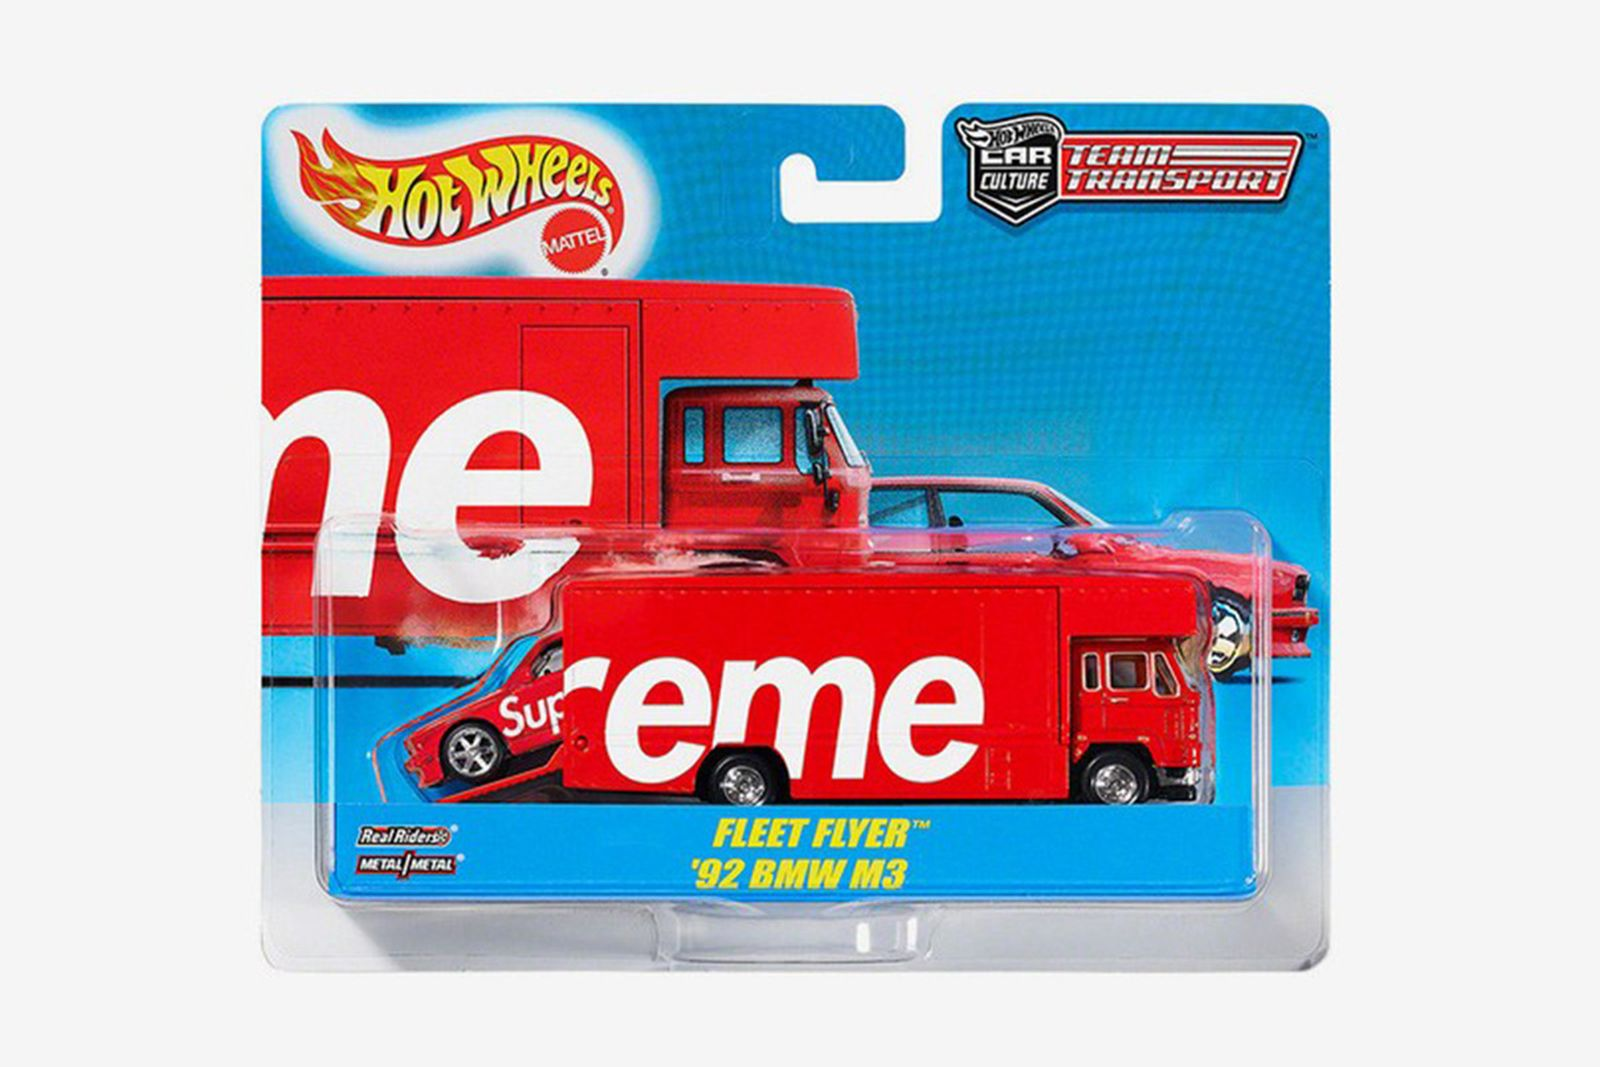 Supreme X Hot Wheels Fleet Flyer Collab Where To Buy Today